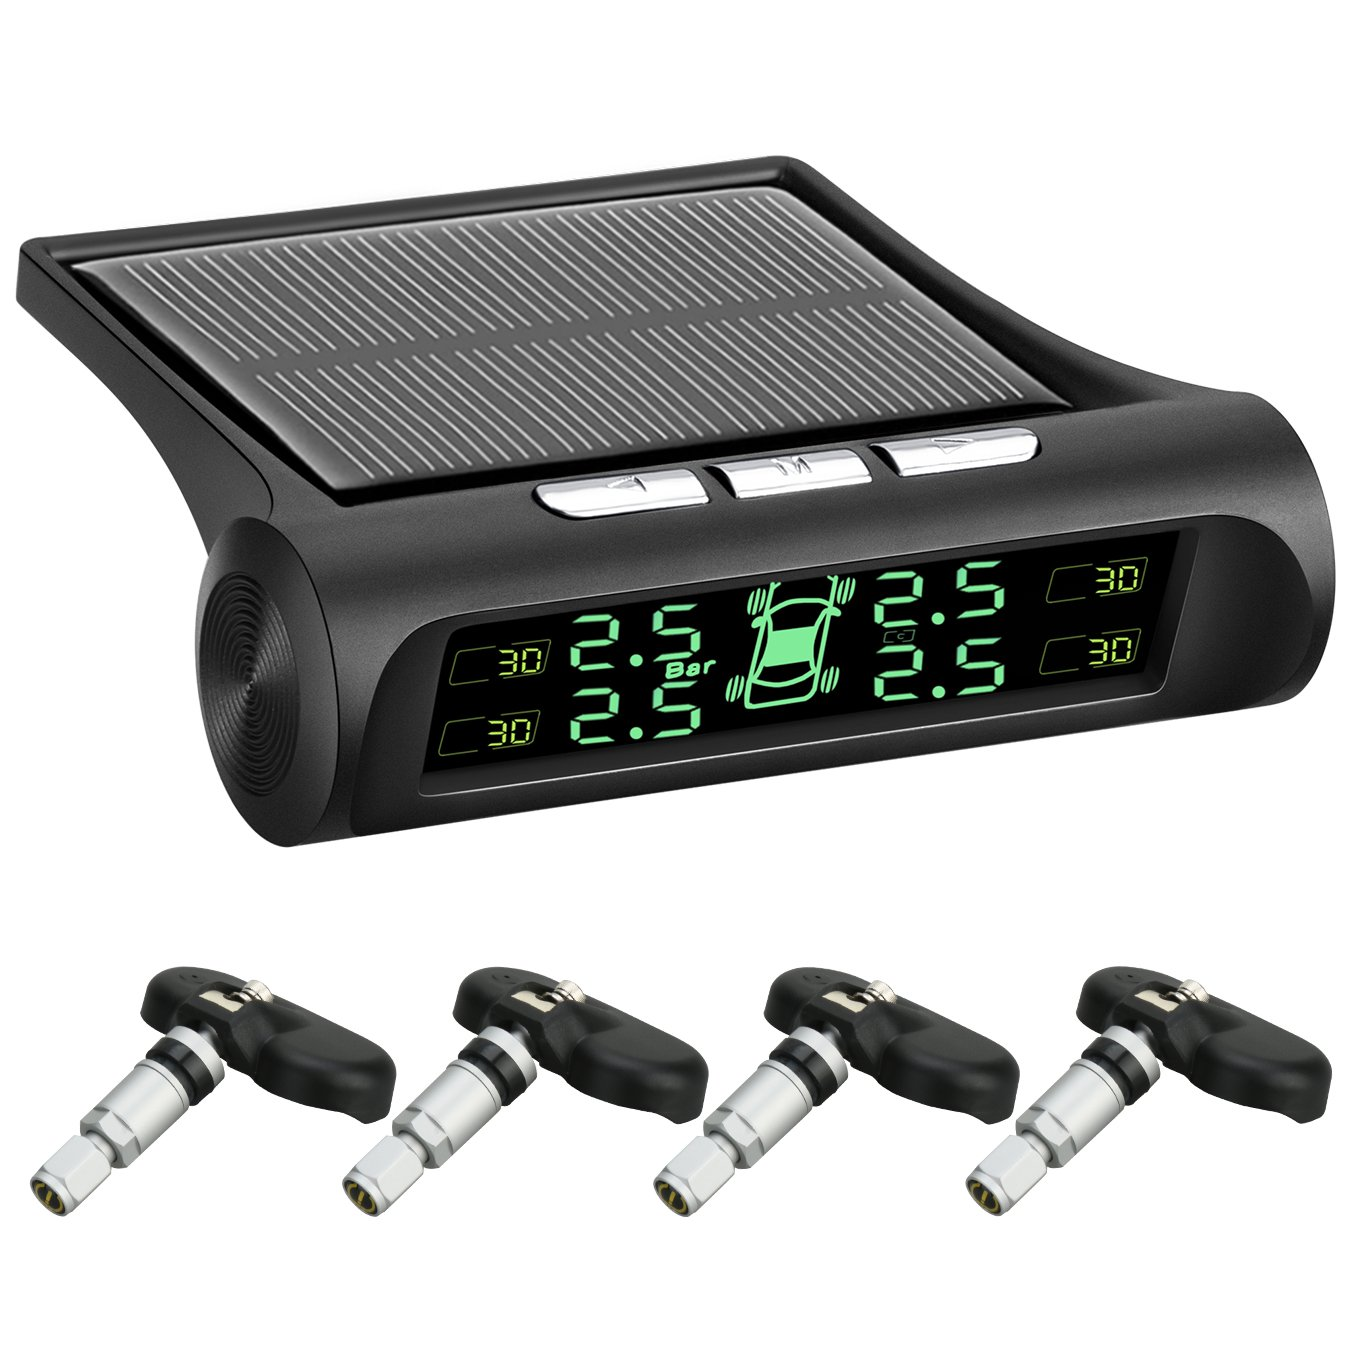 RoadRover Auto TPMS Tire Pressure Monitor System, Digital Tpms System, Solar Power Wireless LCD Display,Tire Pressure Gauge with 4 Internal Sensors for Home Car #T18 (Black)